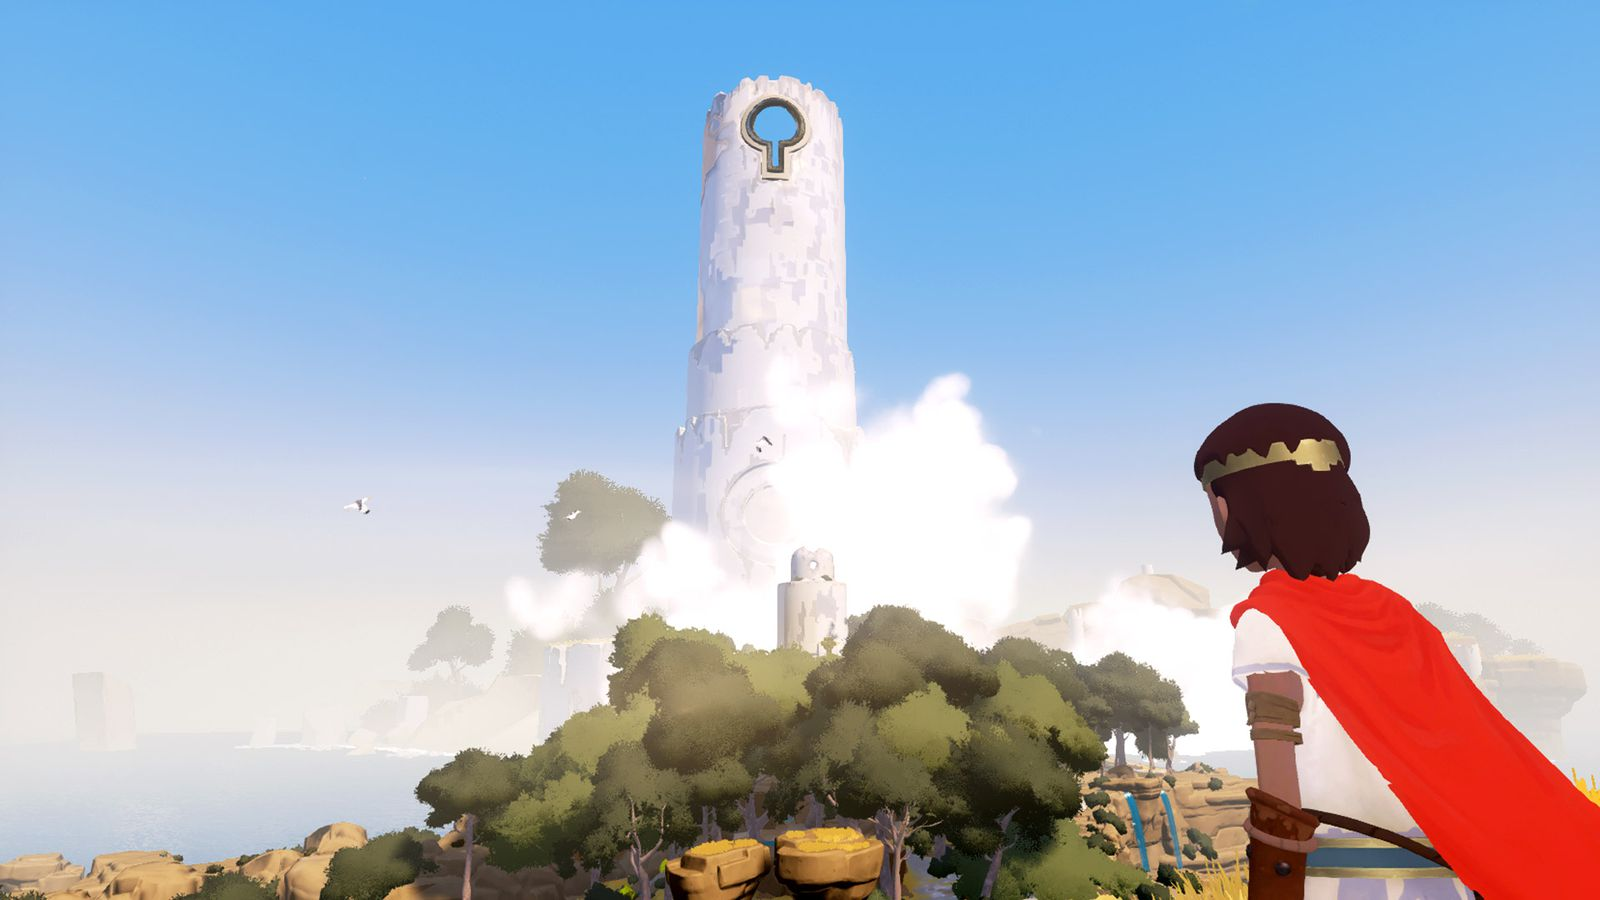 Rime's makers issue strange challenge to crack their DRM